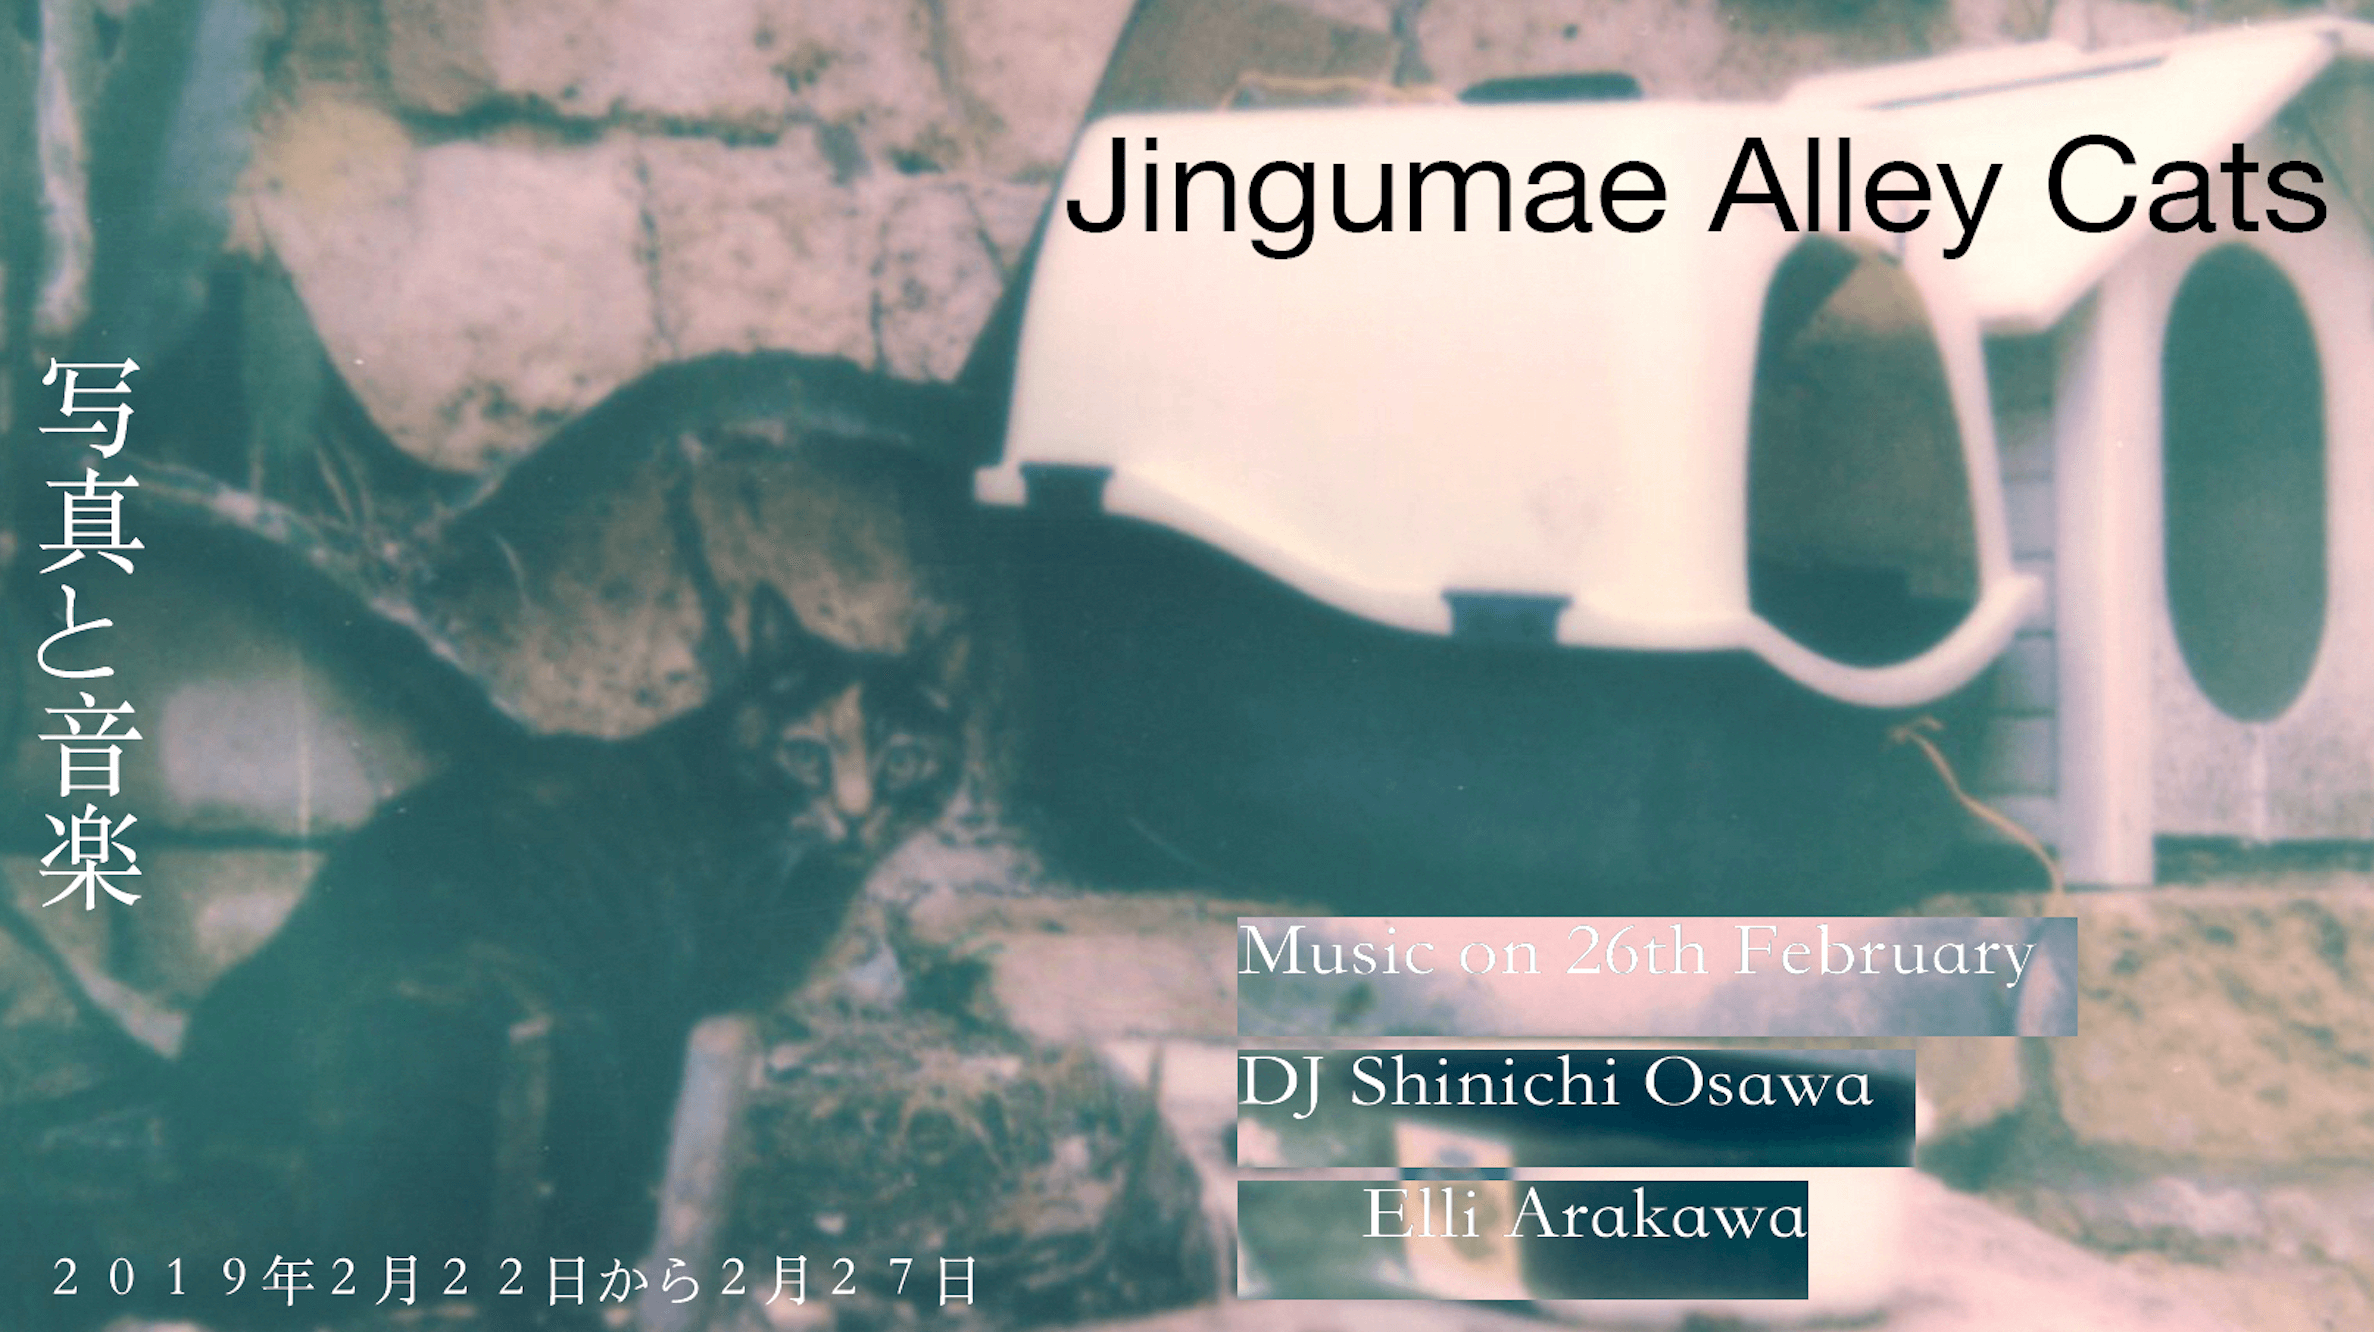 Jingumae Alley Cats - Polaroid Installation